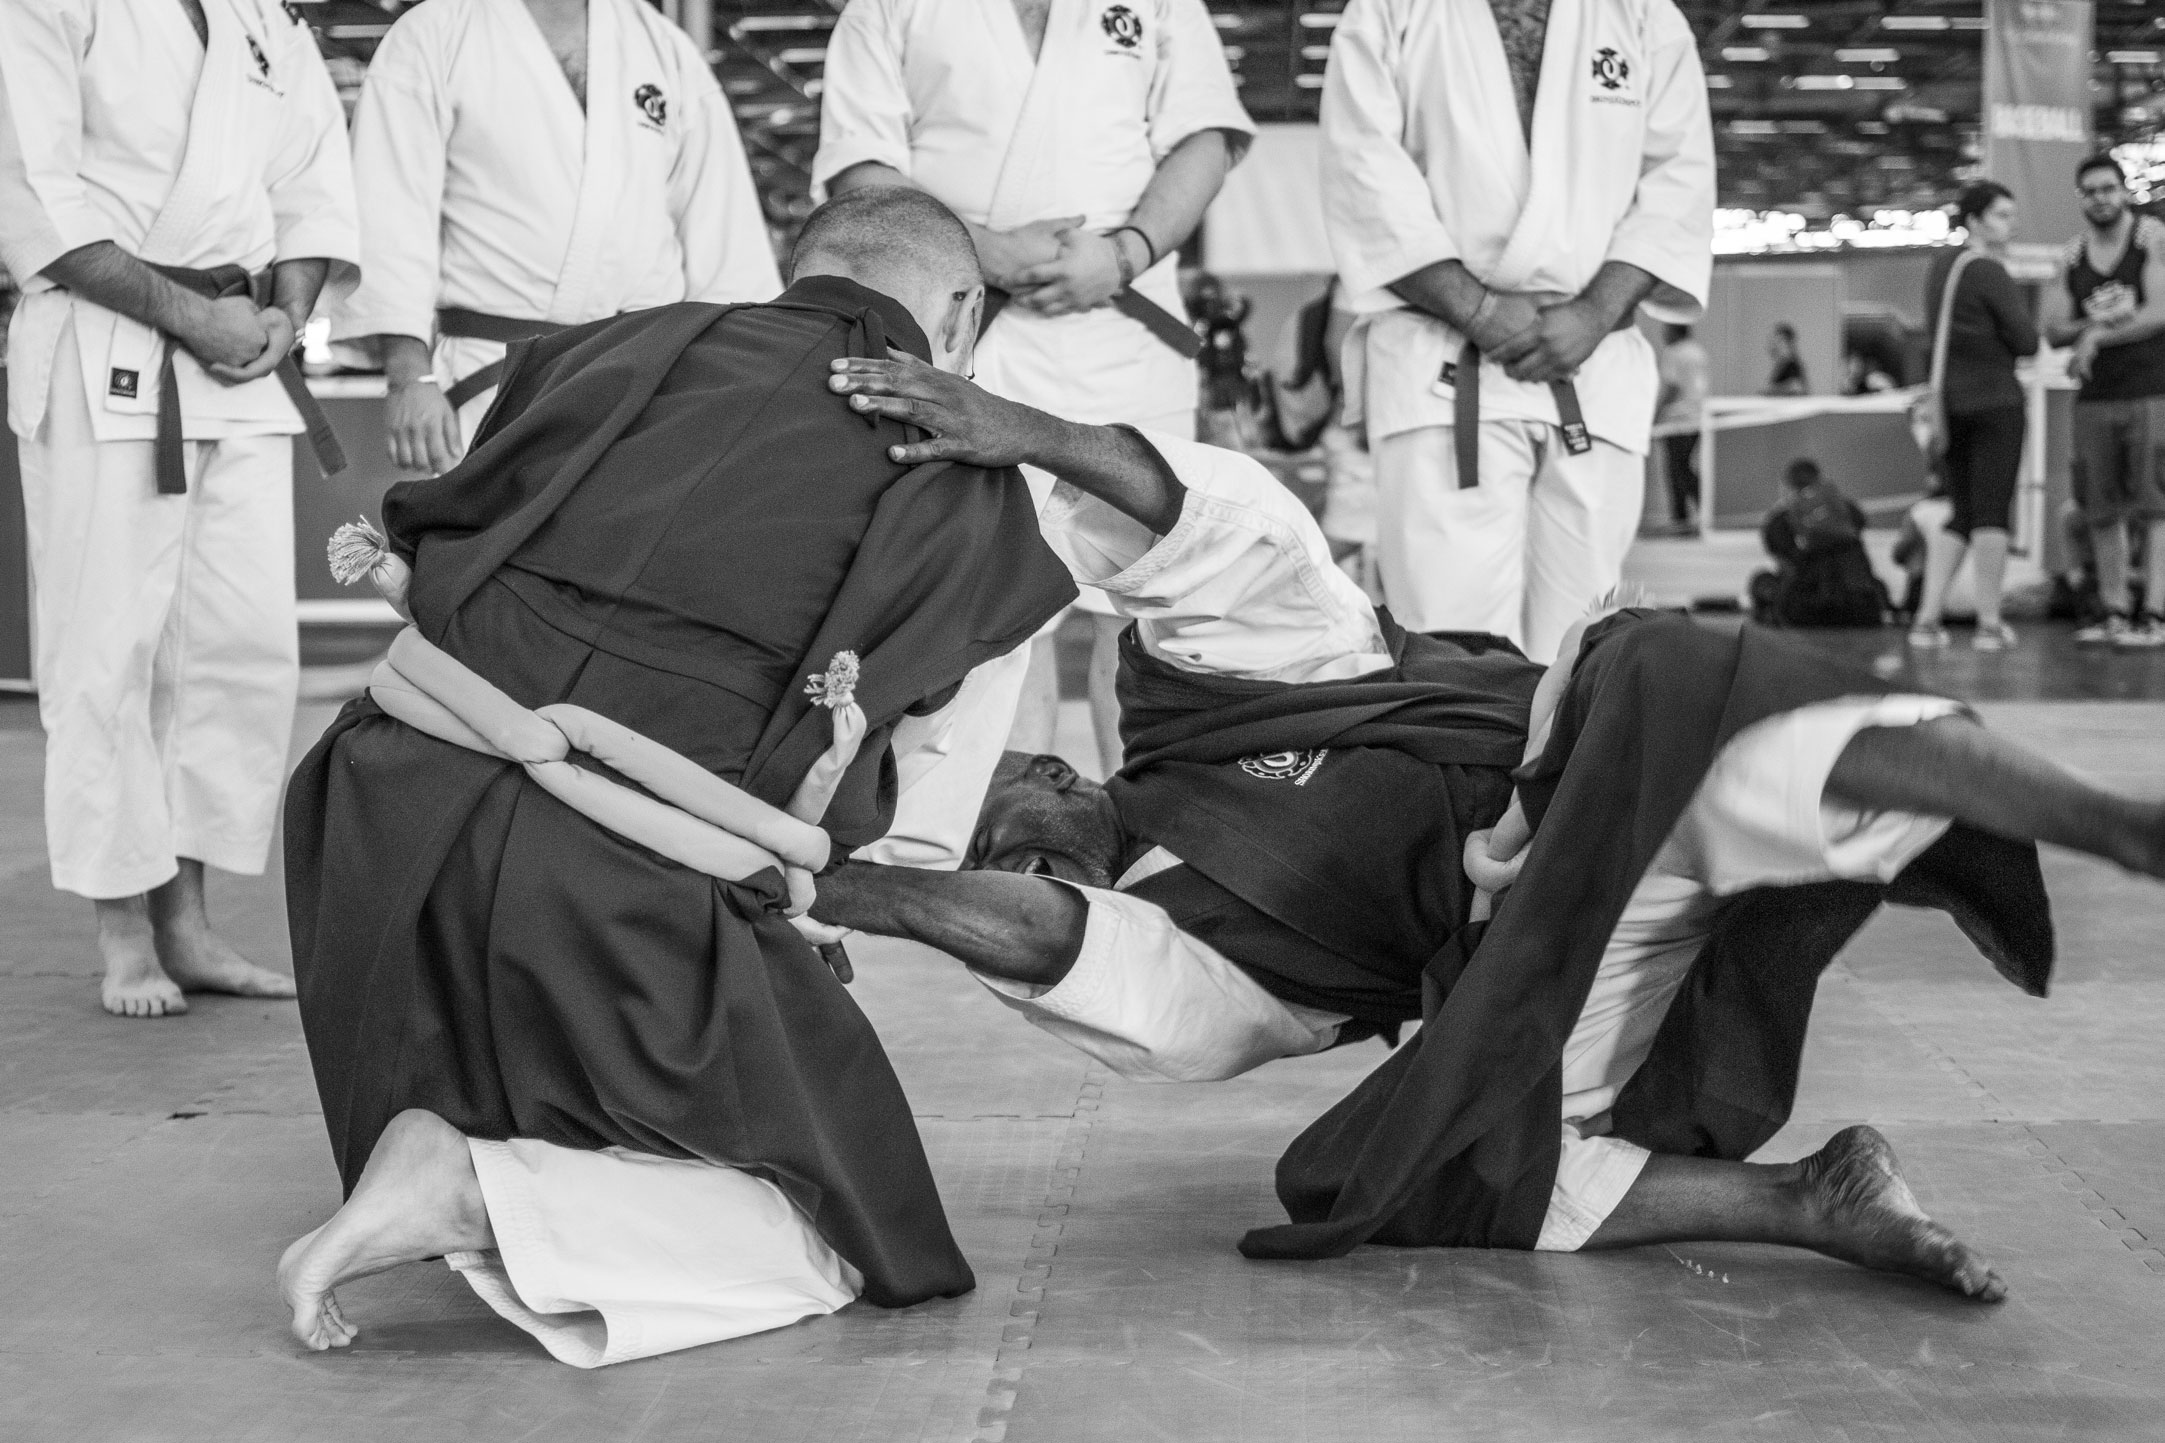 Japan expo 2015 shorinji kempo